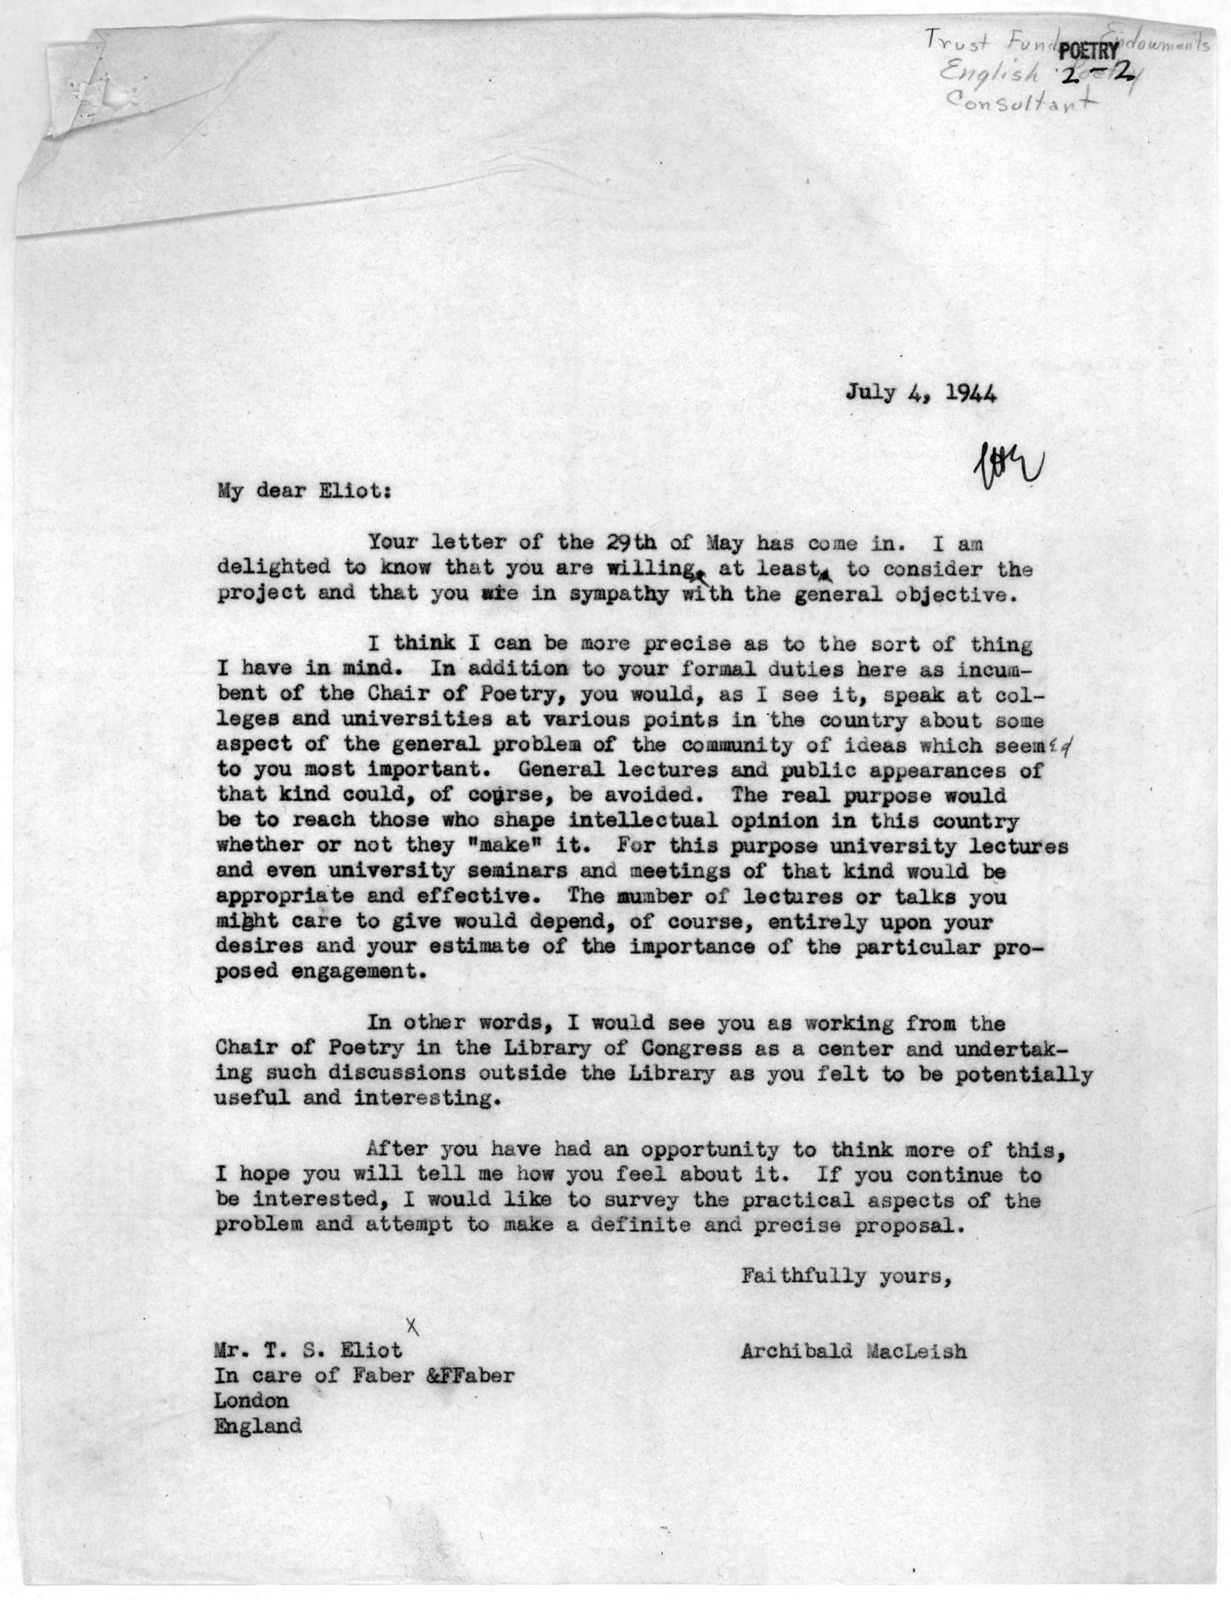 Letter from Archibald MacLeish to T.S. Eliot, July 4, 1944